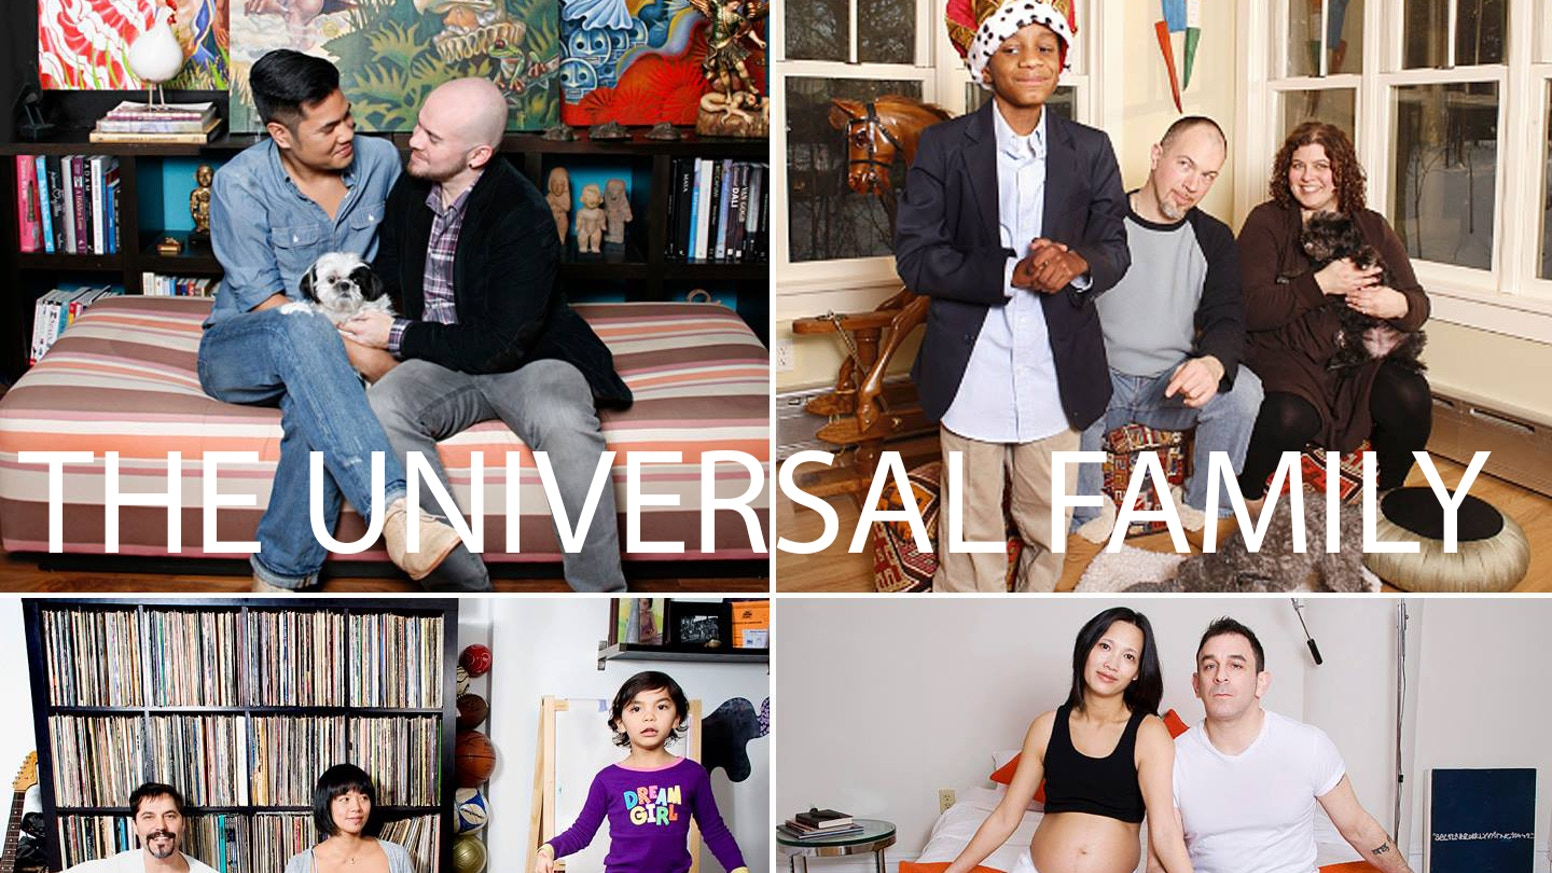 The Universal Family is a portrait series uniting the human race through the spirit of family & the fact that love has no boundaries.